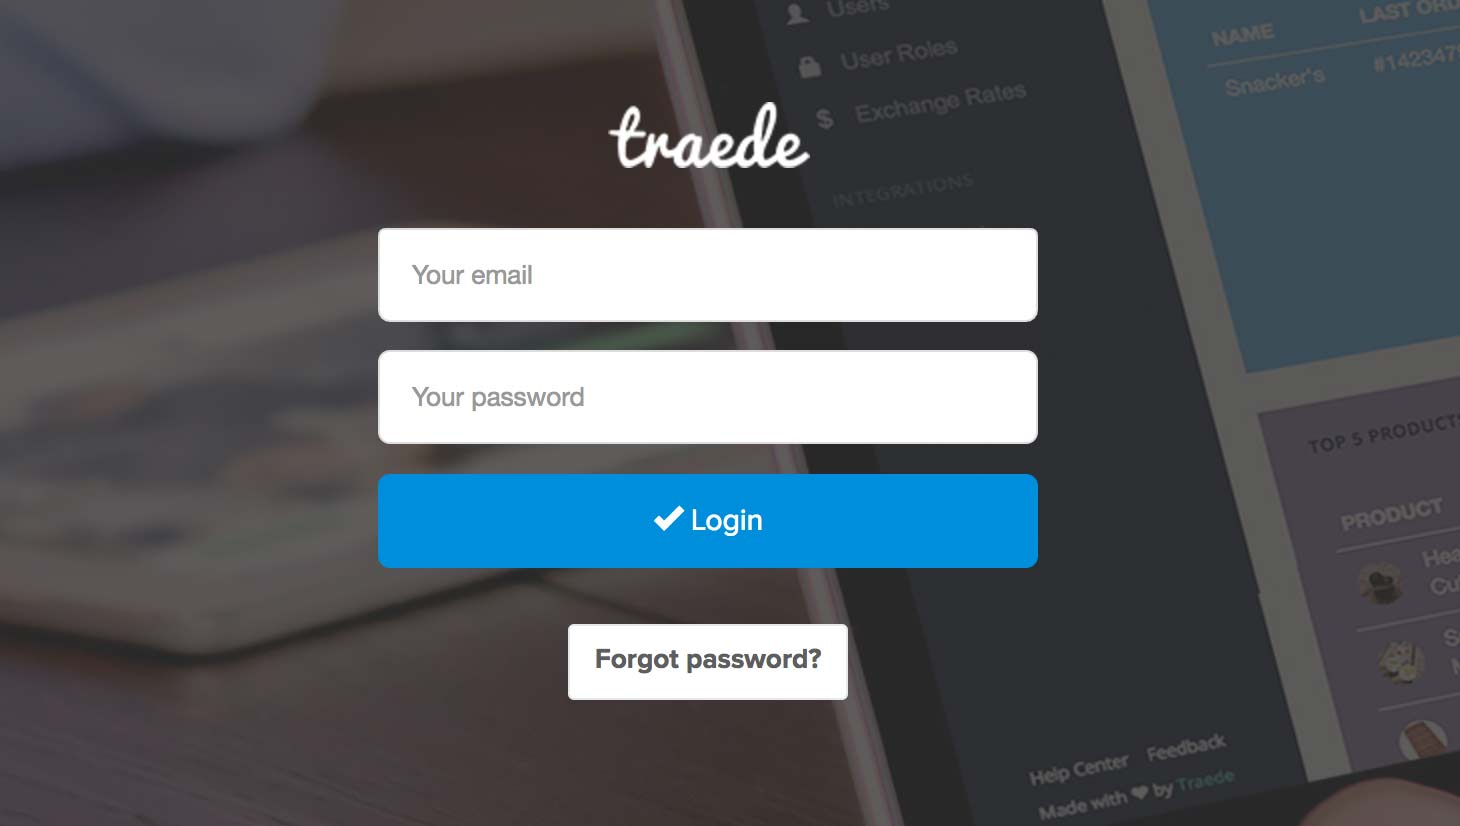 Login screen for OAuth 2 password flow